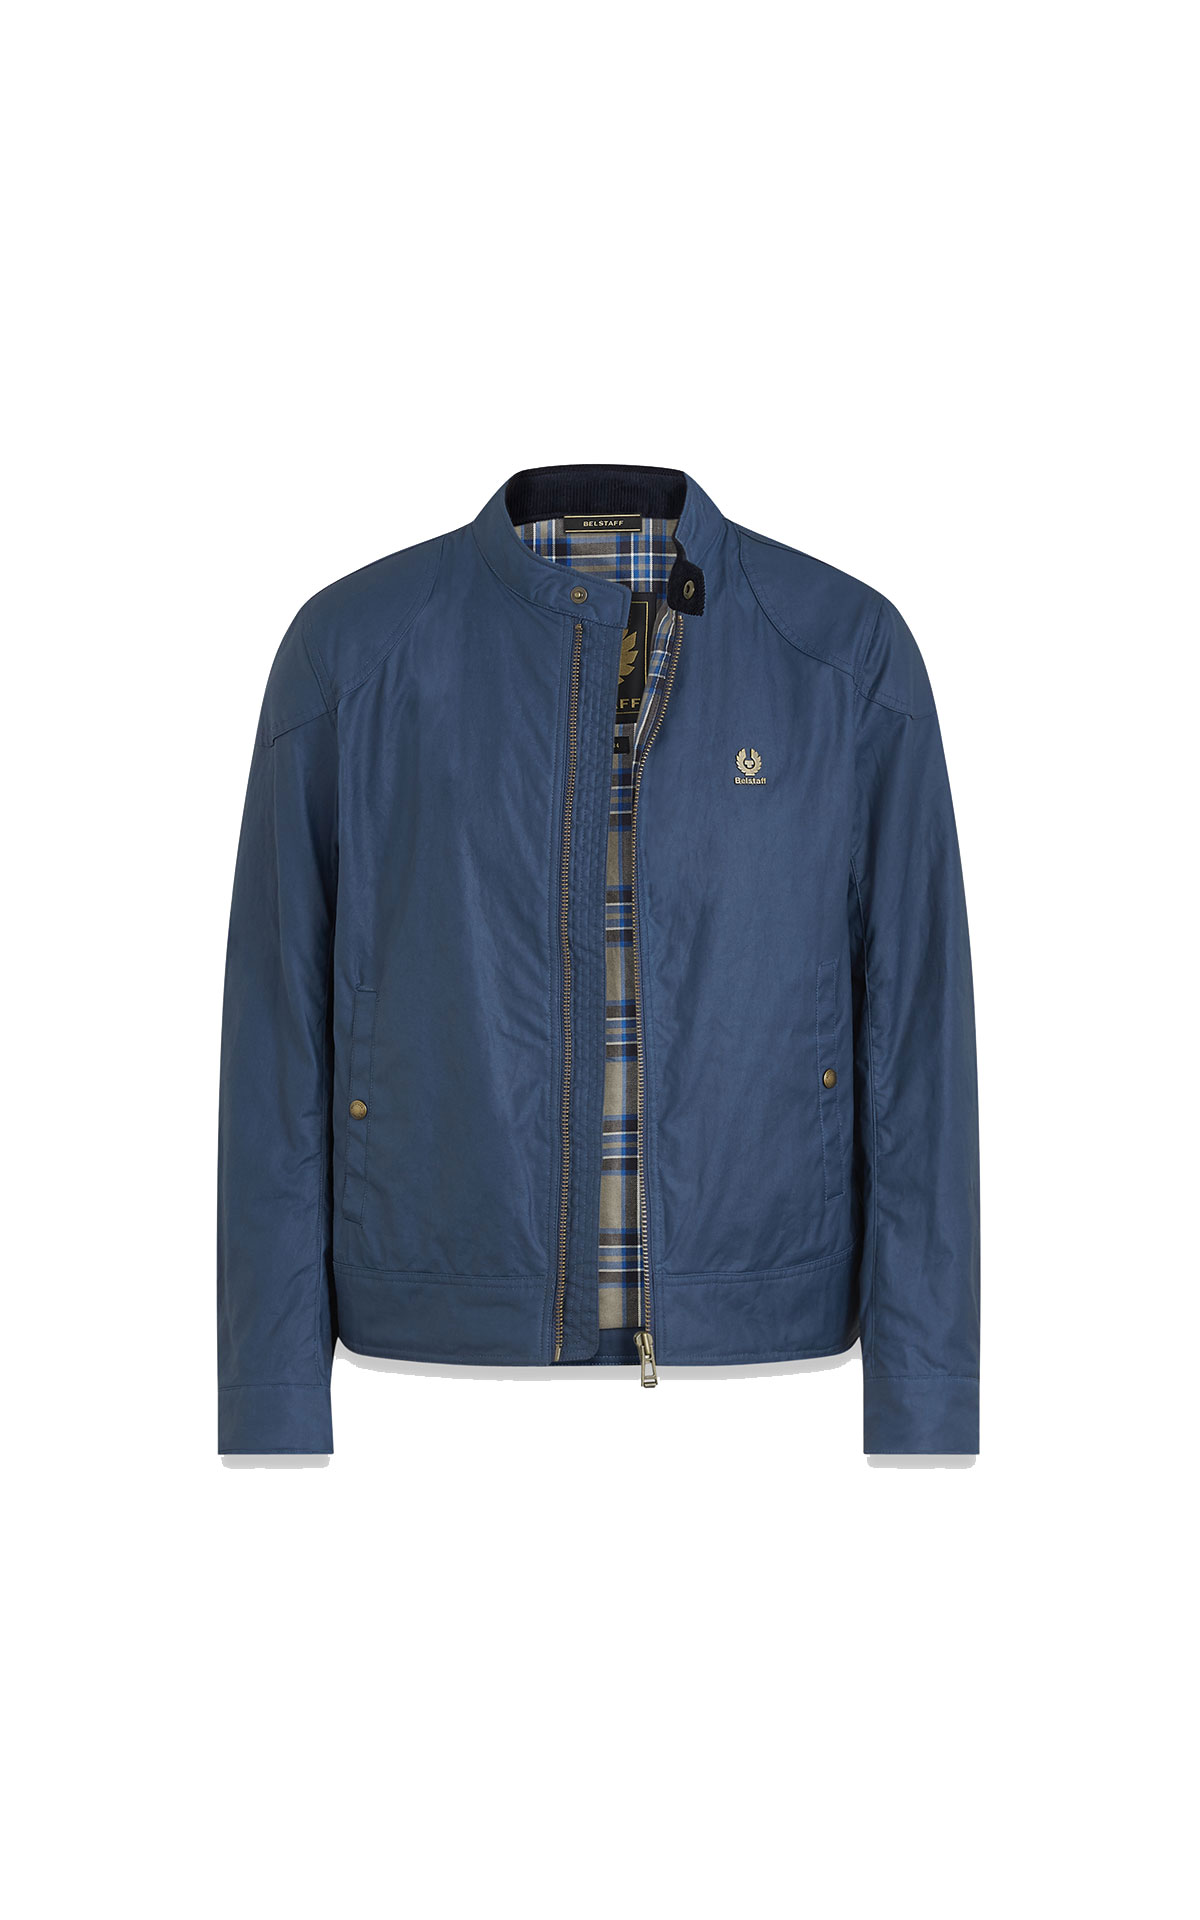 Belstaff Kelland jacket from Bicester Village